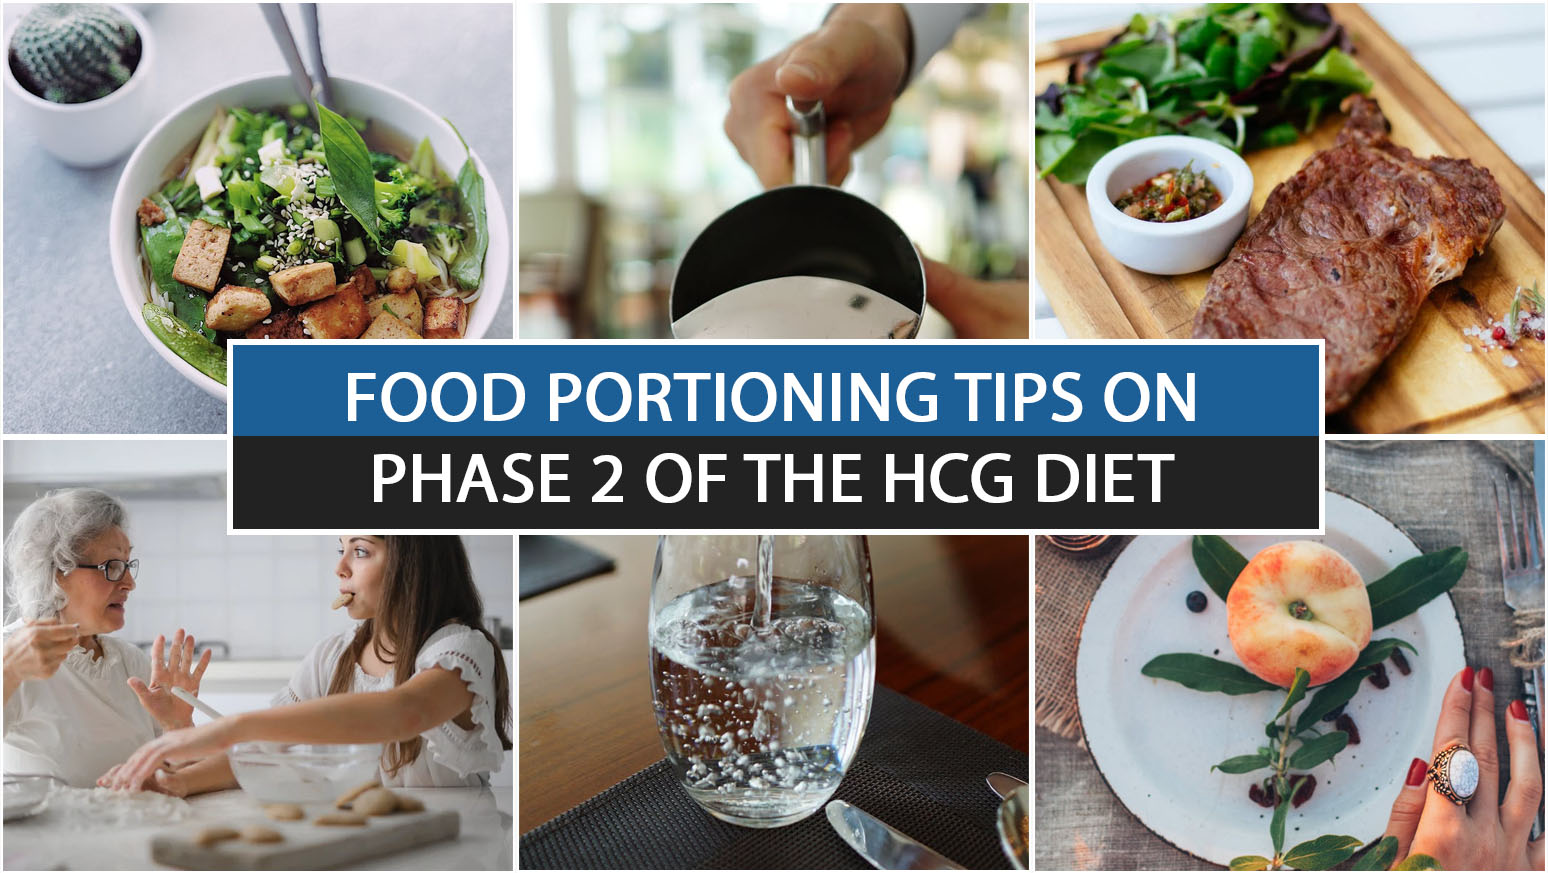 FOOD PORTIONING TIPS ON PHASE 2 OF THE HCG DIET